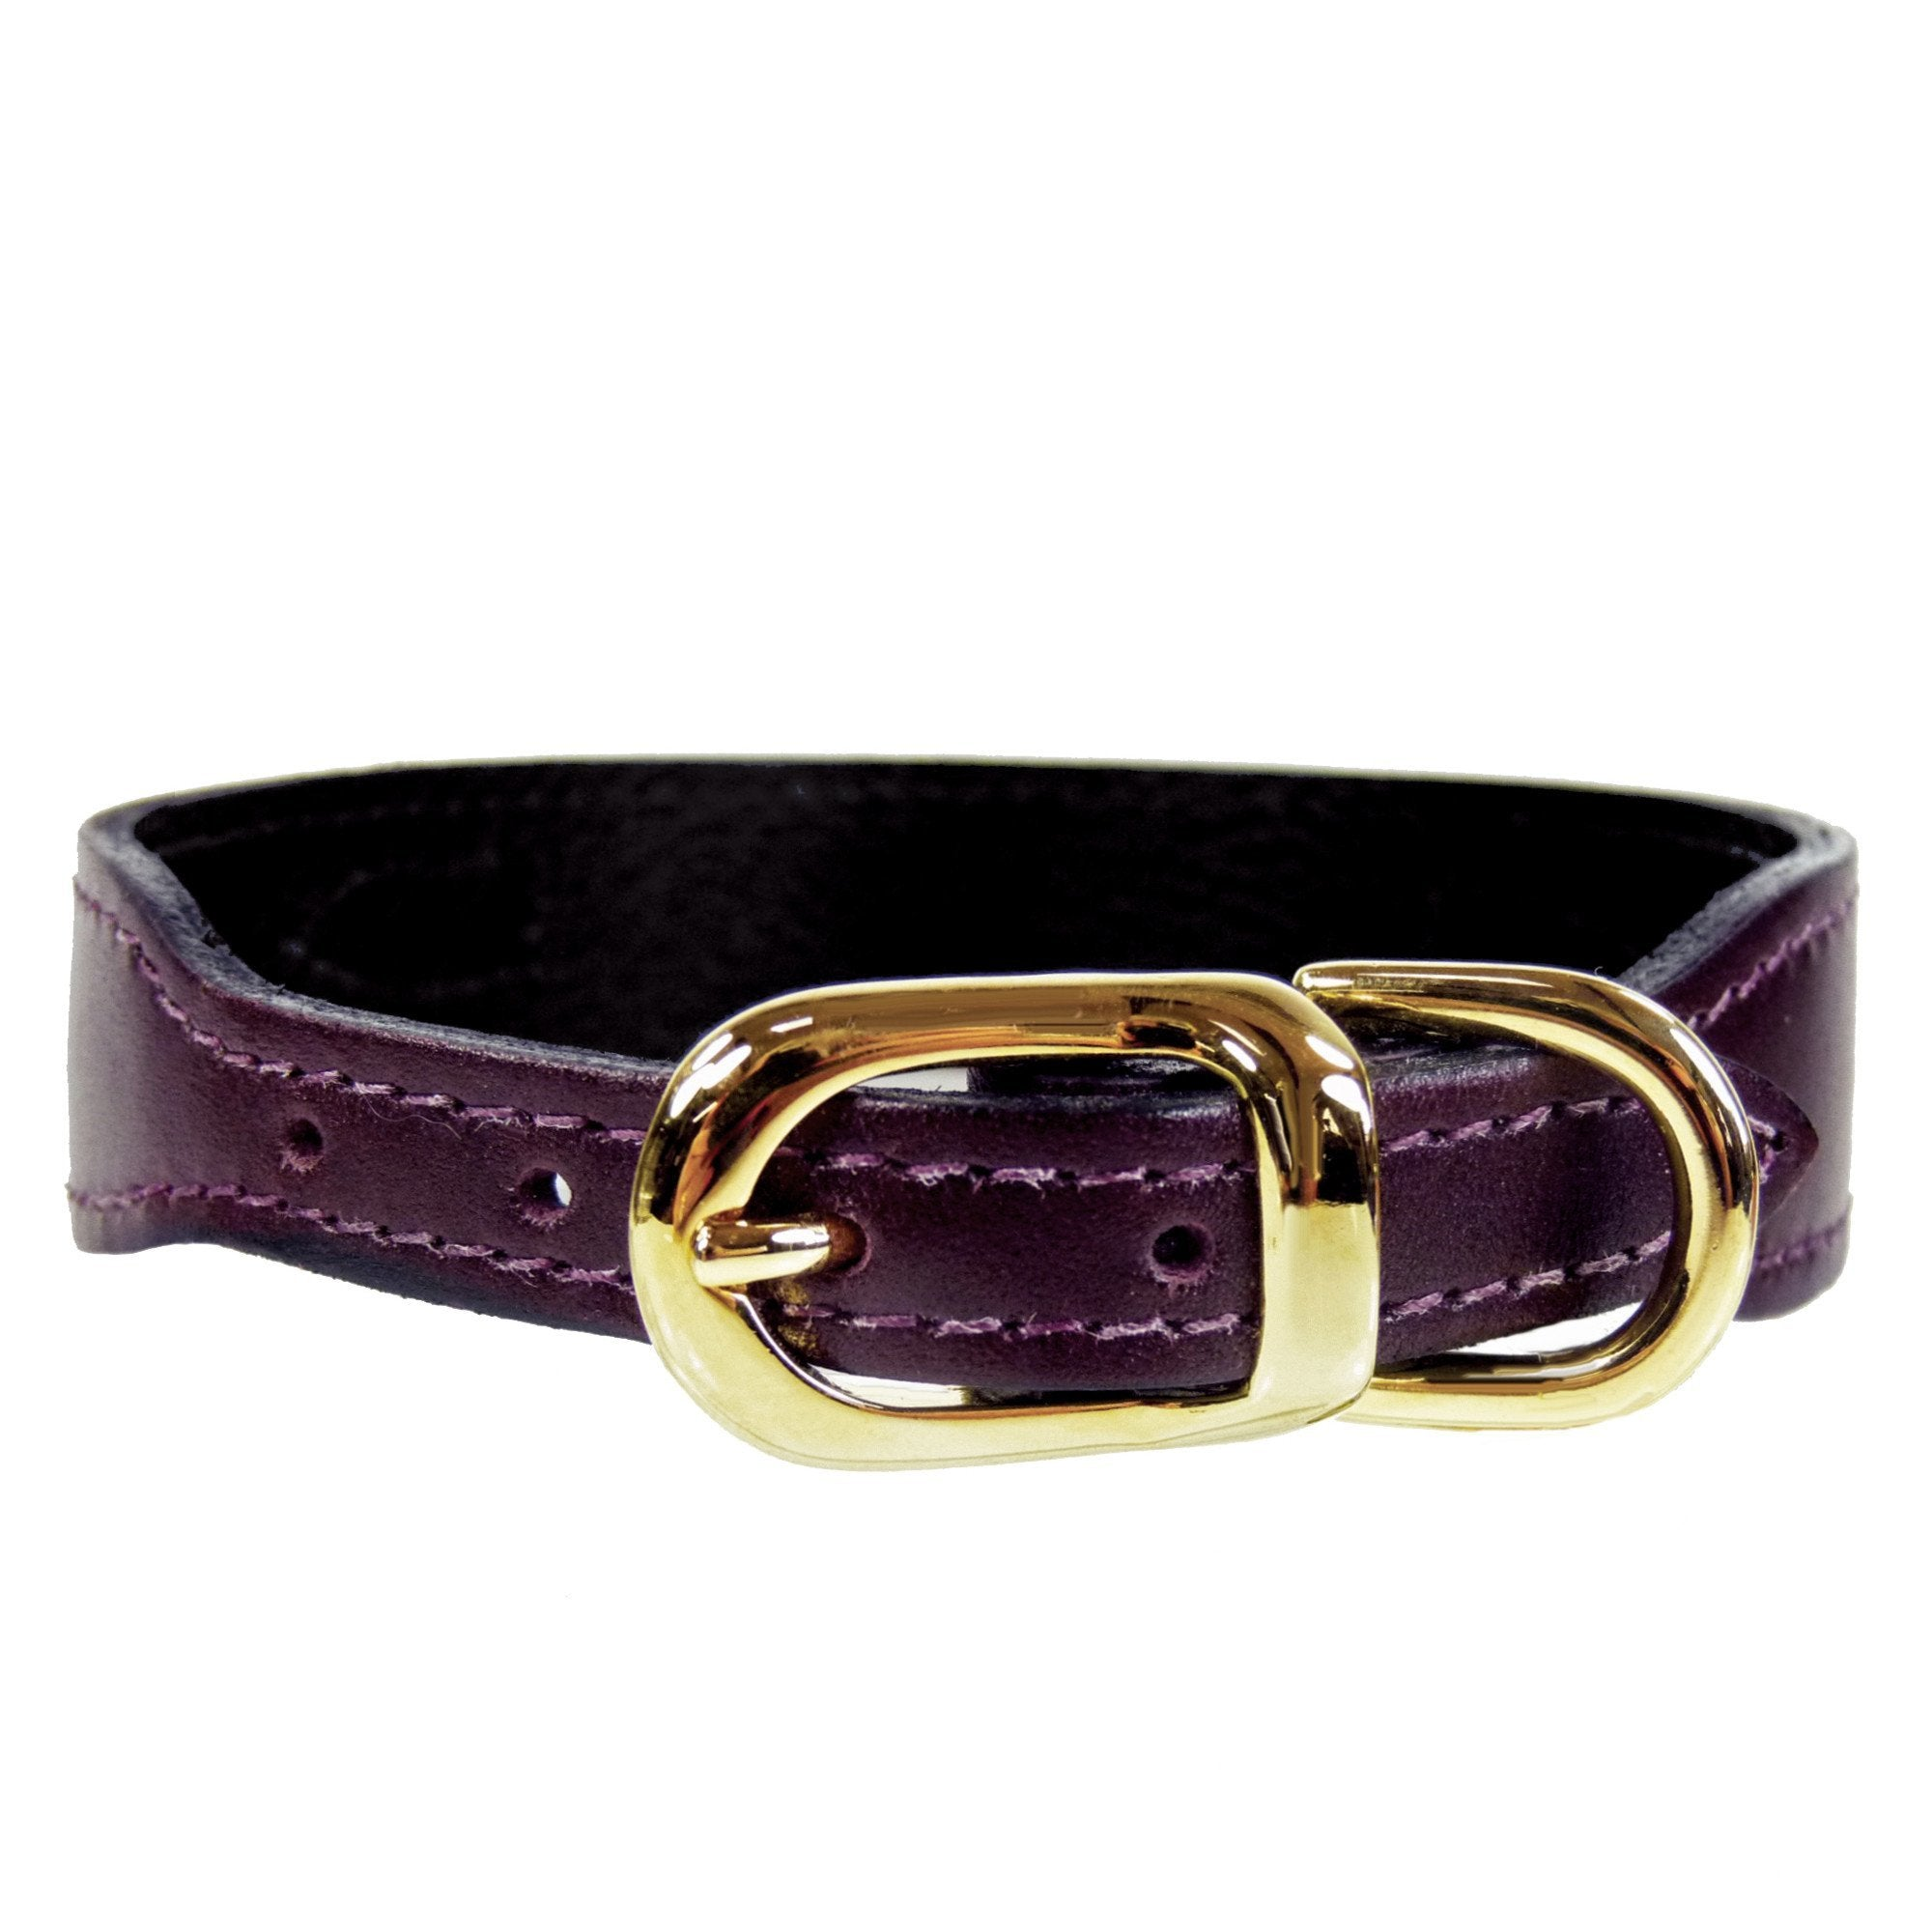 Hartman & Rose Italian Burgundy Leather - Designer Dog Collar with Gold Hardware